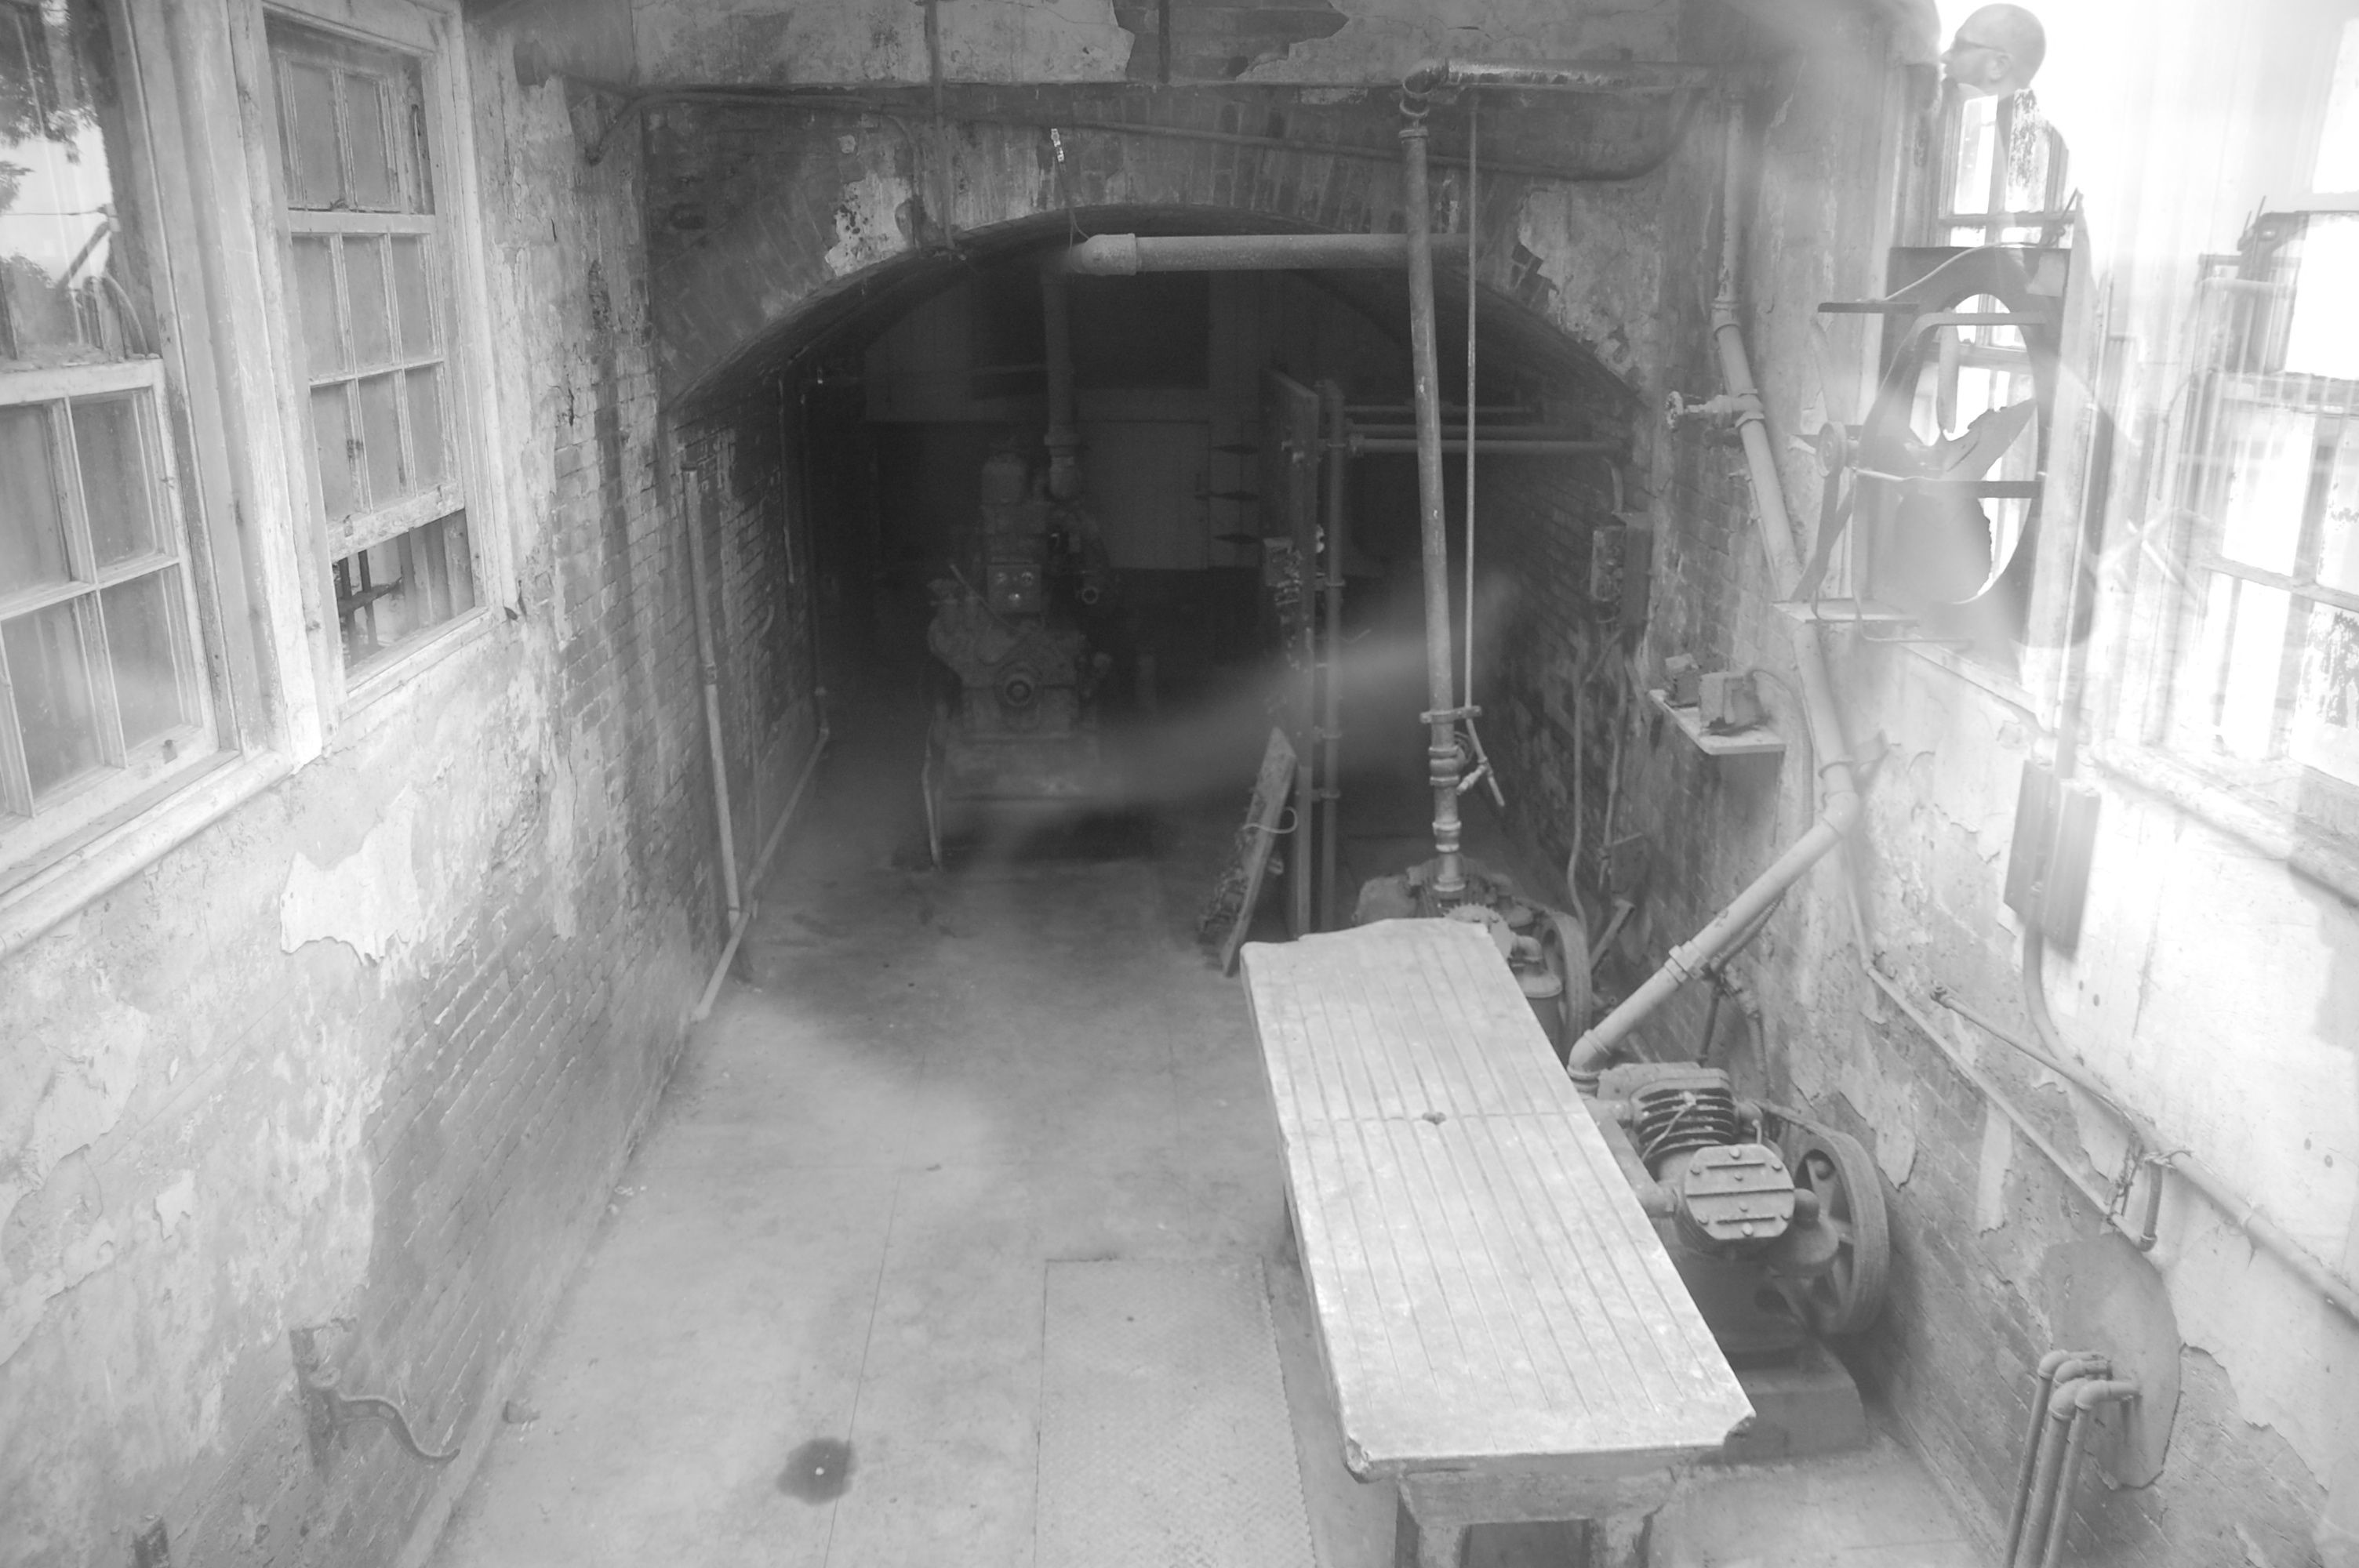 The Morgue At Alcatraz Anyone Else See The Man In The Wheelchair